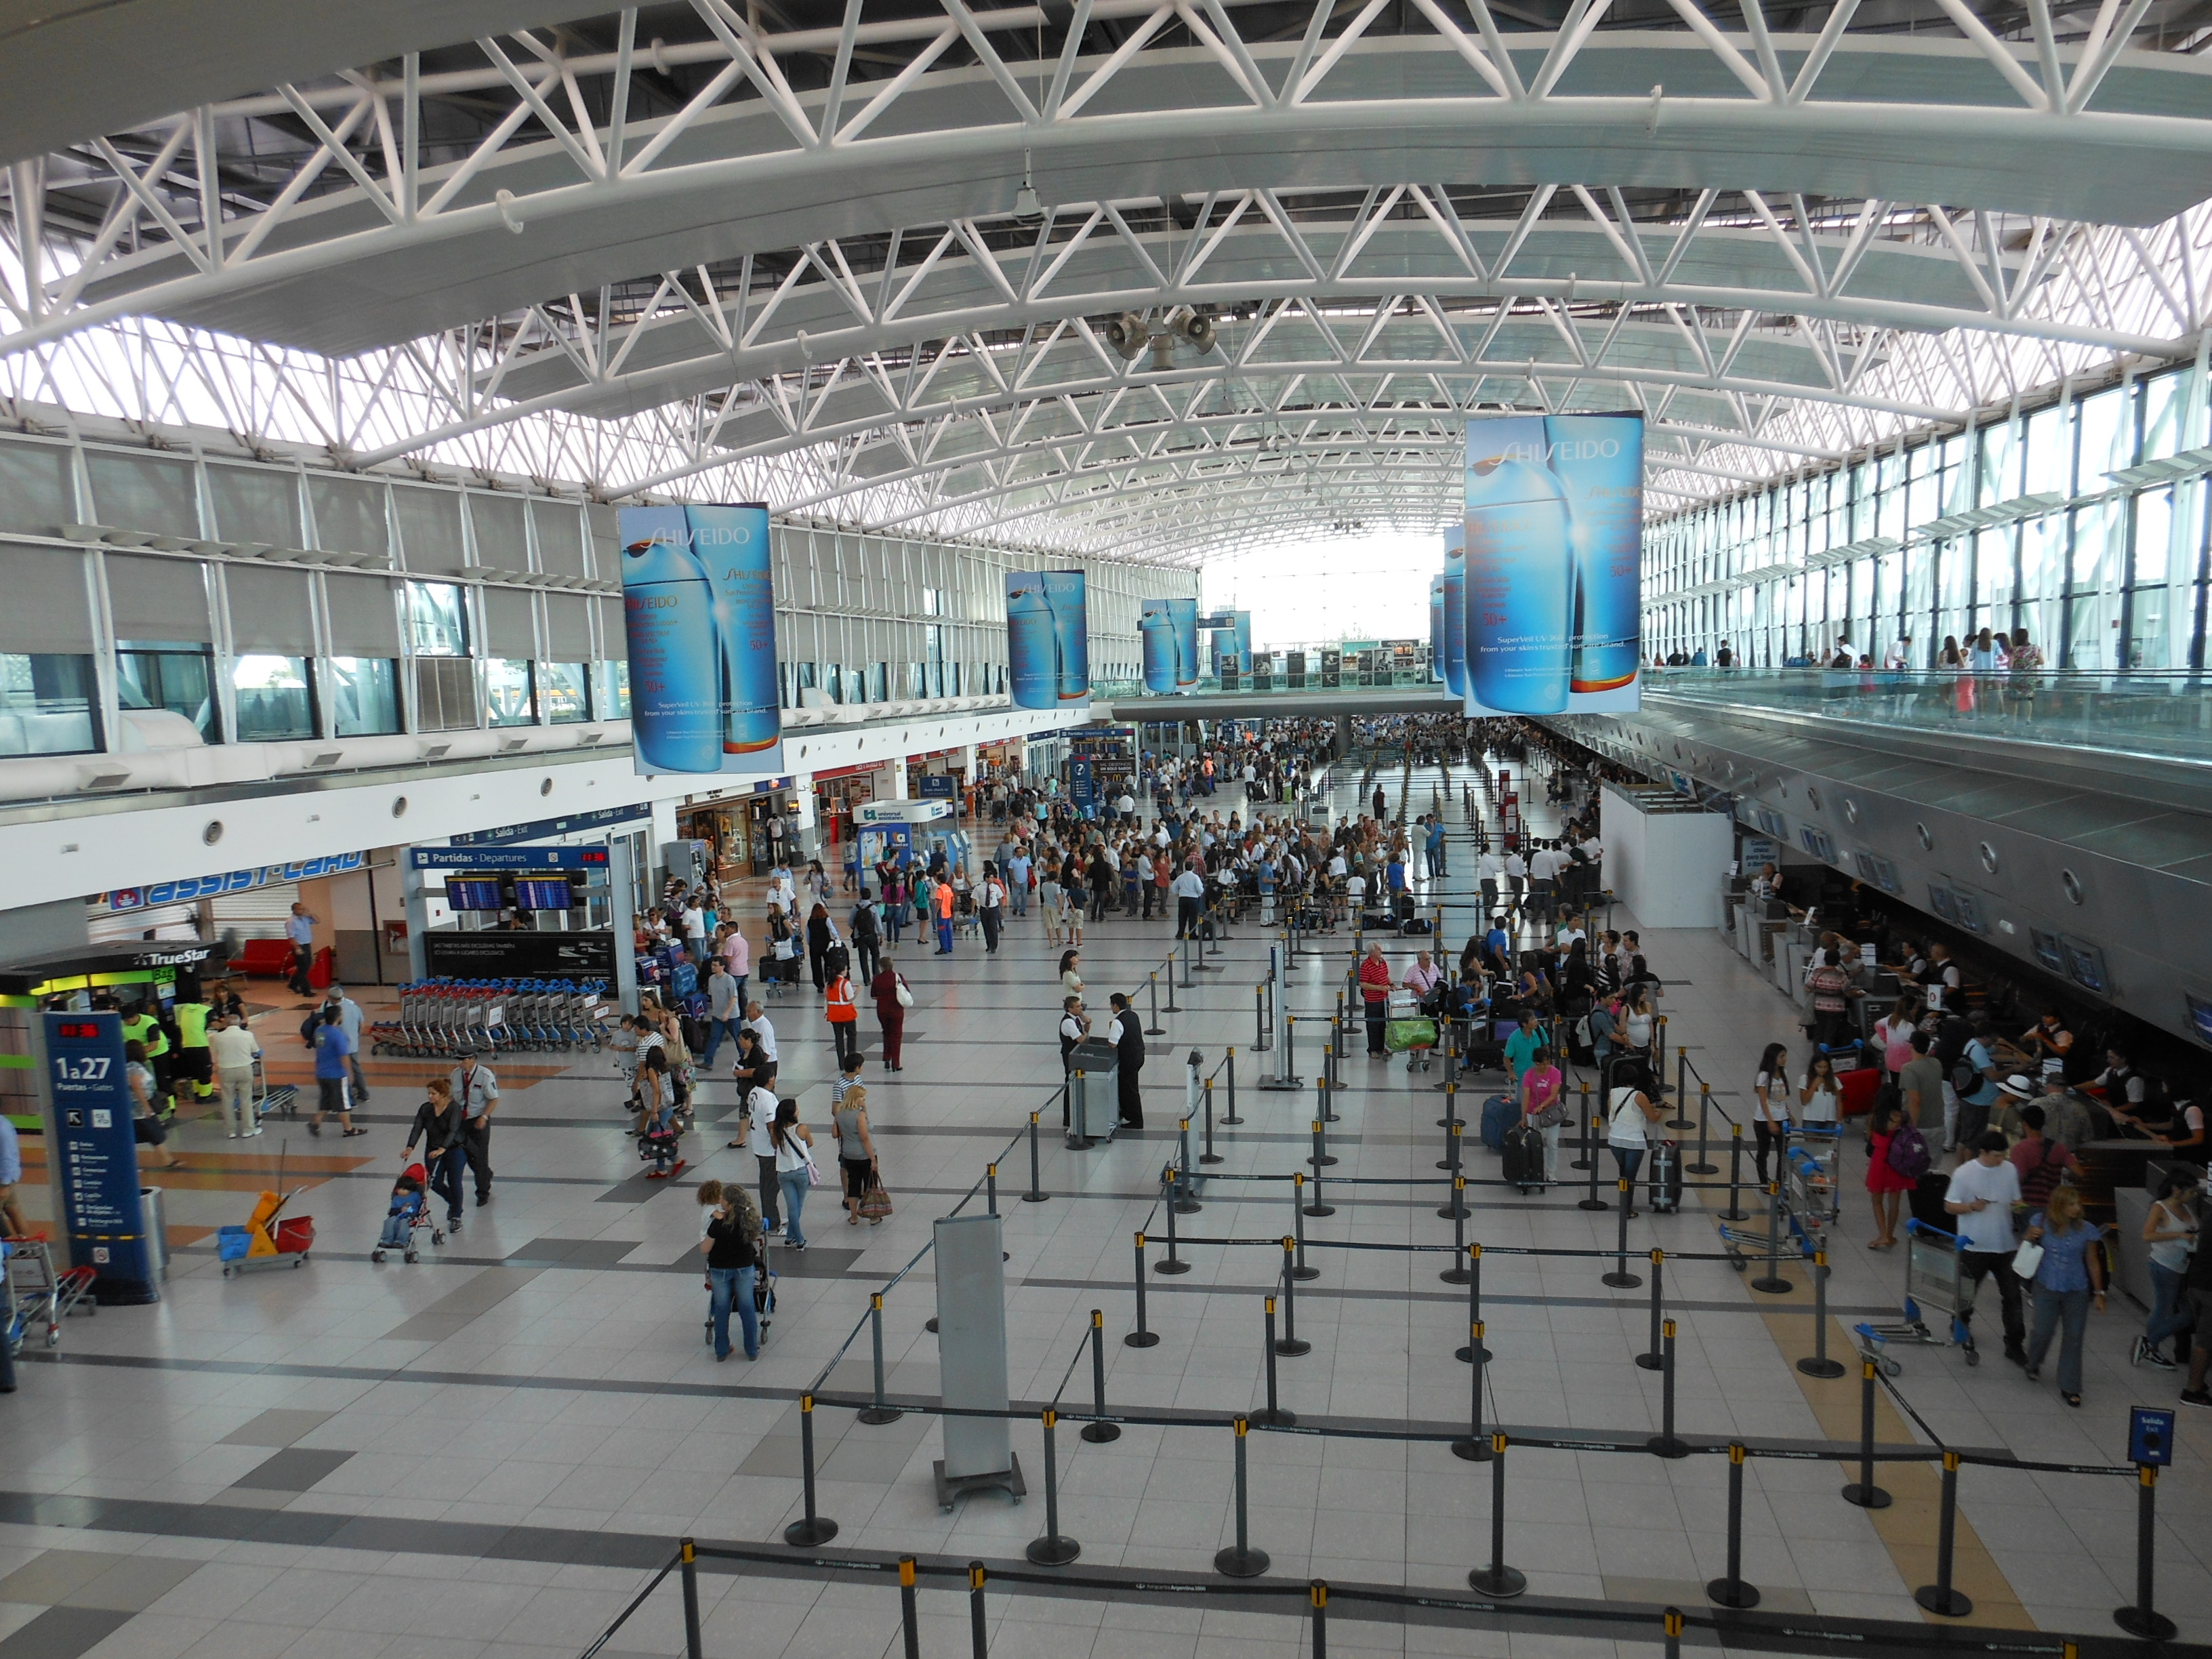 Aeroporto Eze : Buenos aires u como chegar e sair dos aeroportos where in the